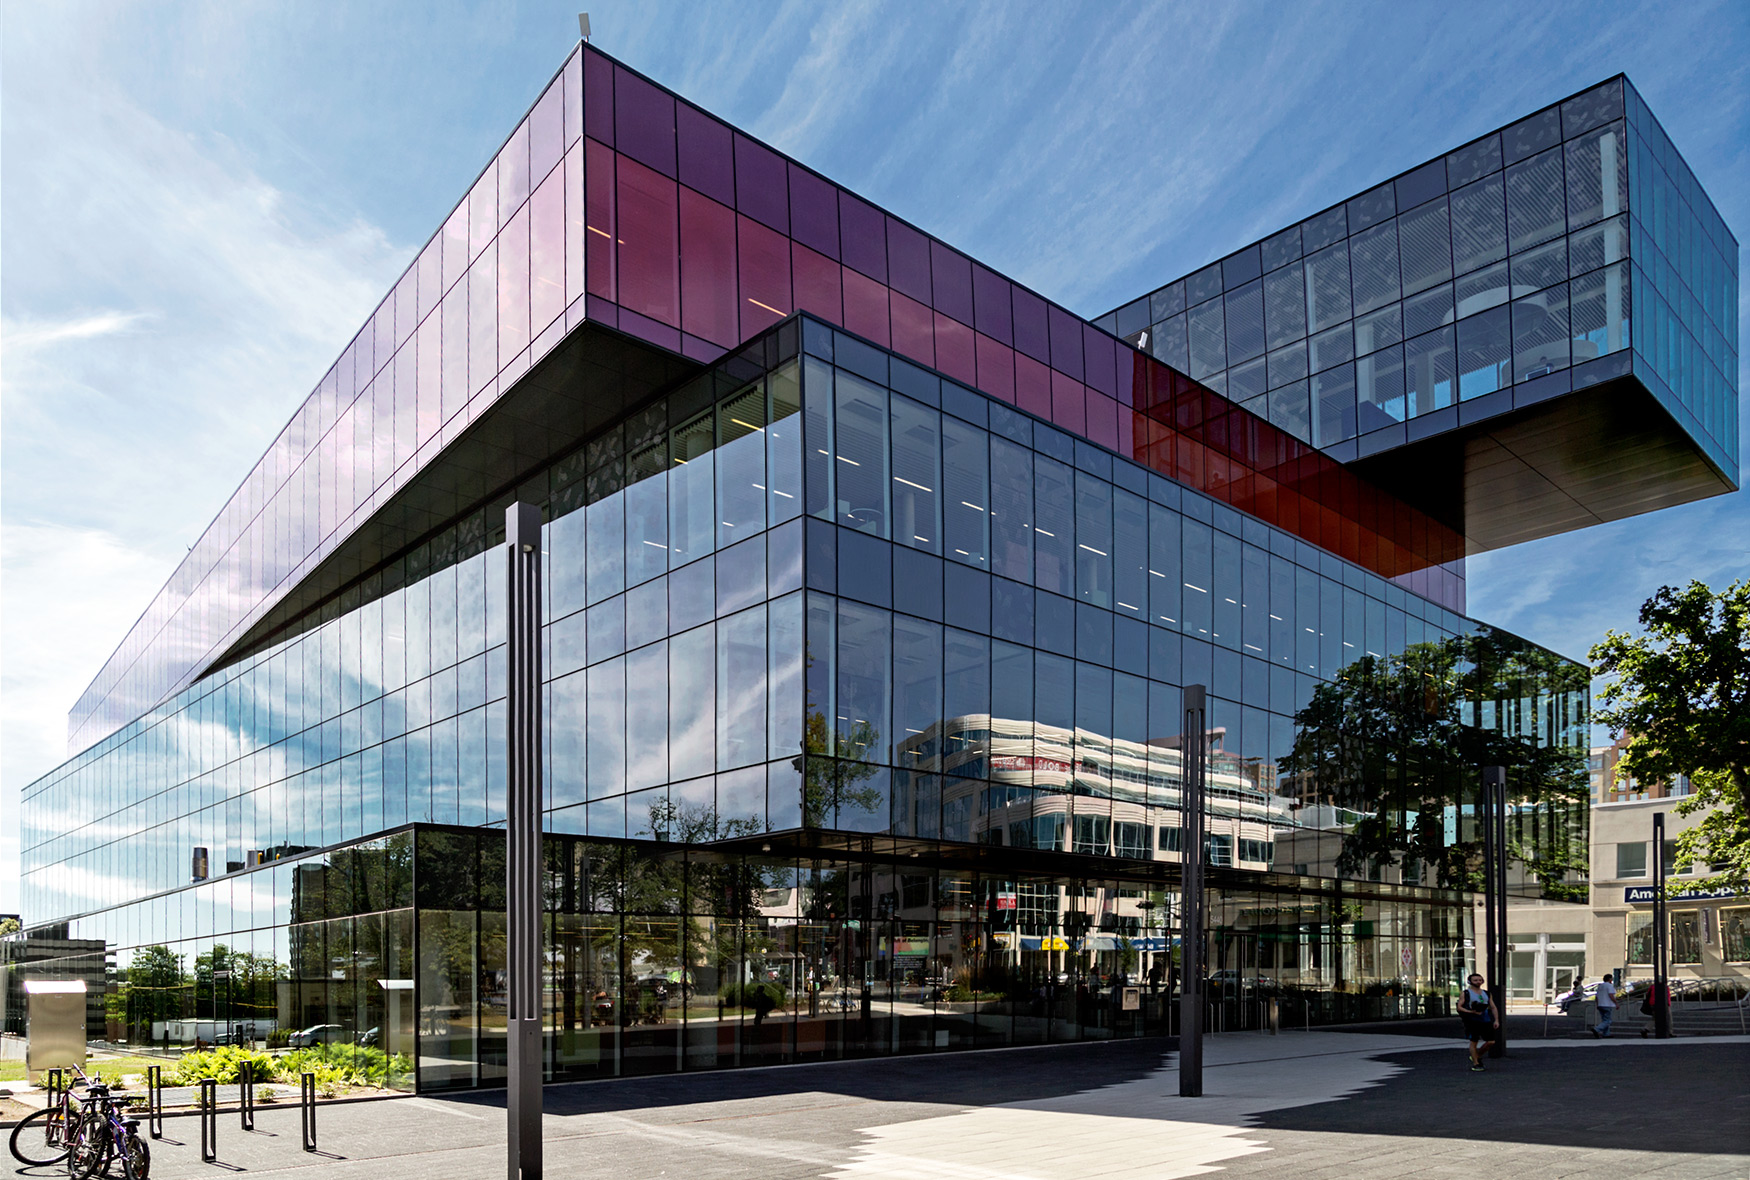 Halifax Central Library, in Halifax, Nova Scotia - designed to look like a stack of books